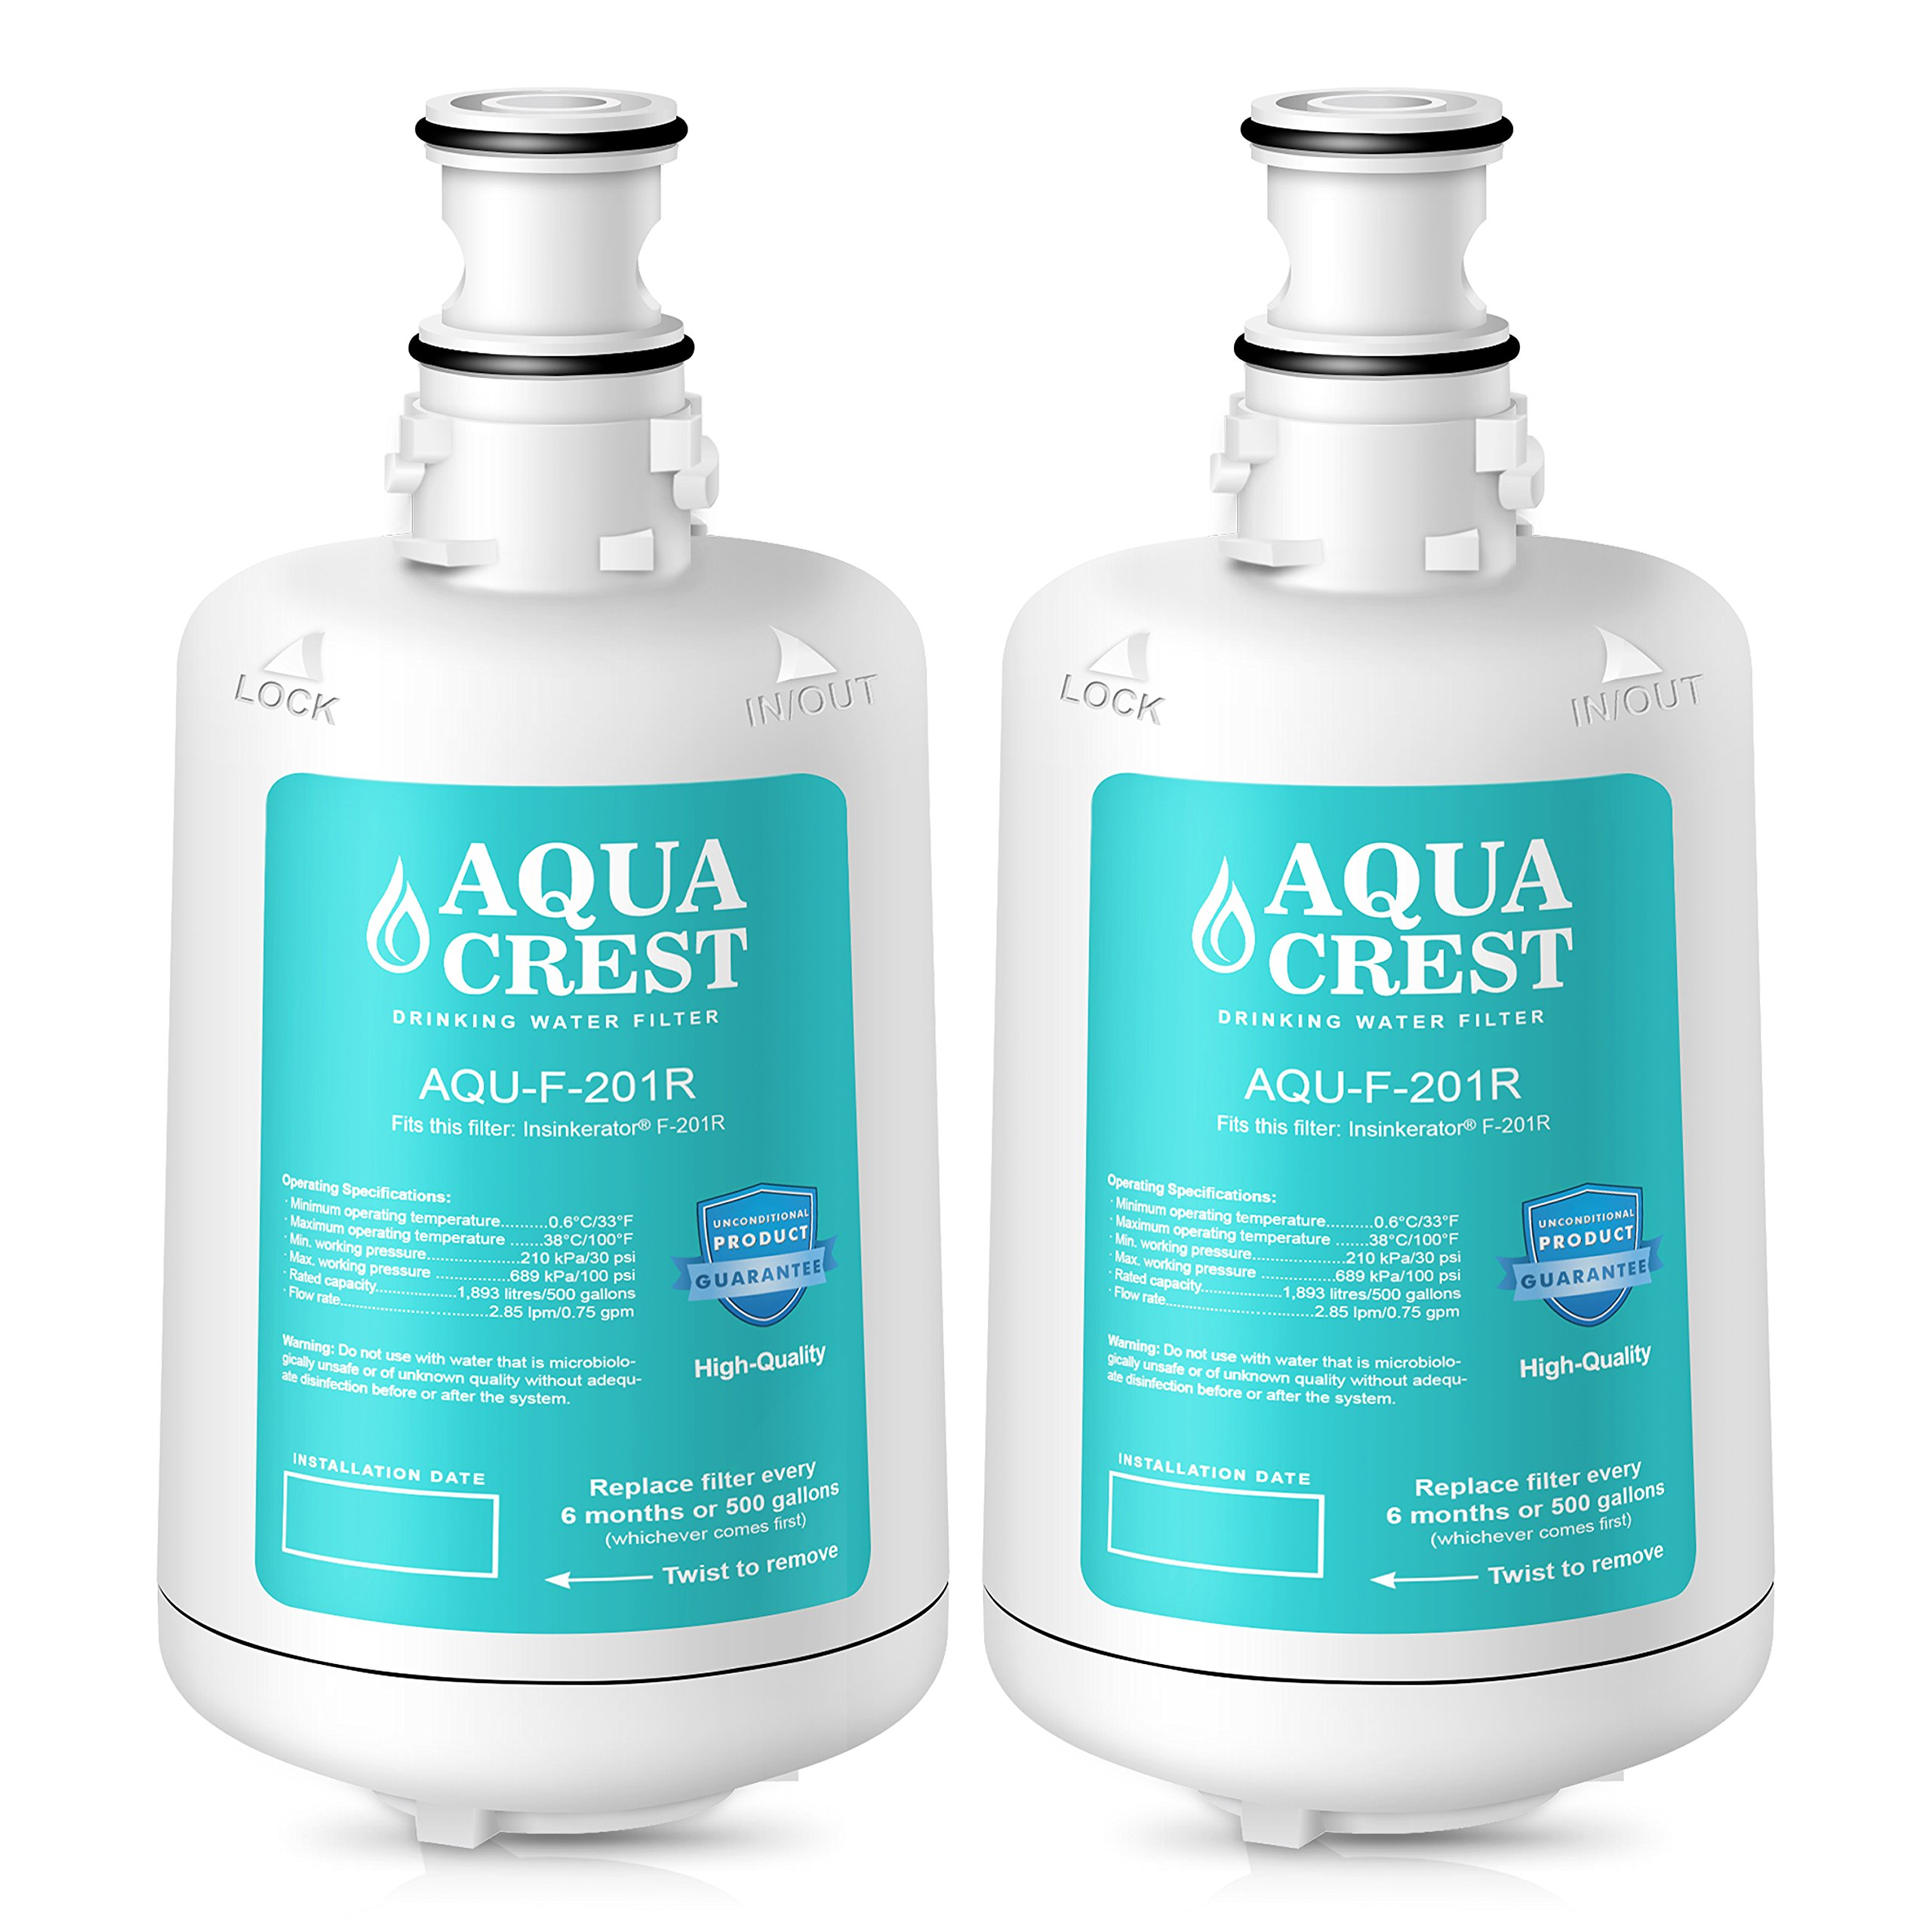 AQUACREST F-201R Replacement Under Sink Water Filter, Compatible with Insinkerator F-201R Filter Cartridge for Hot Water Dispenser (Pack of 2)